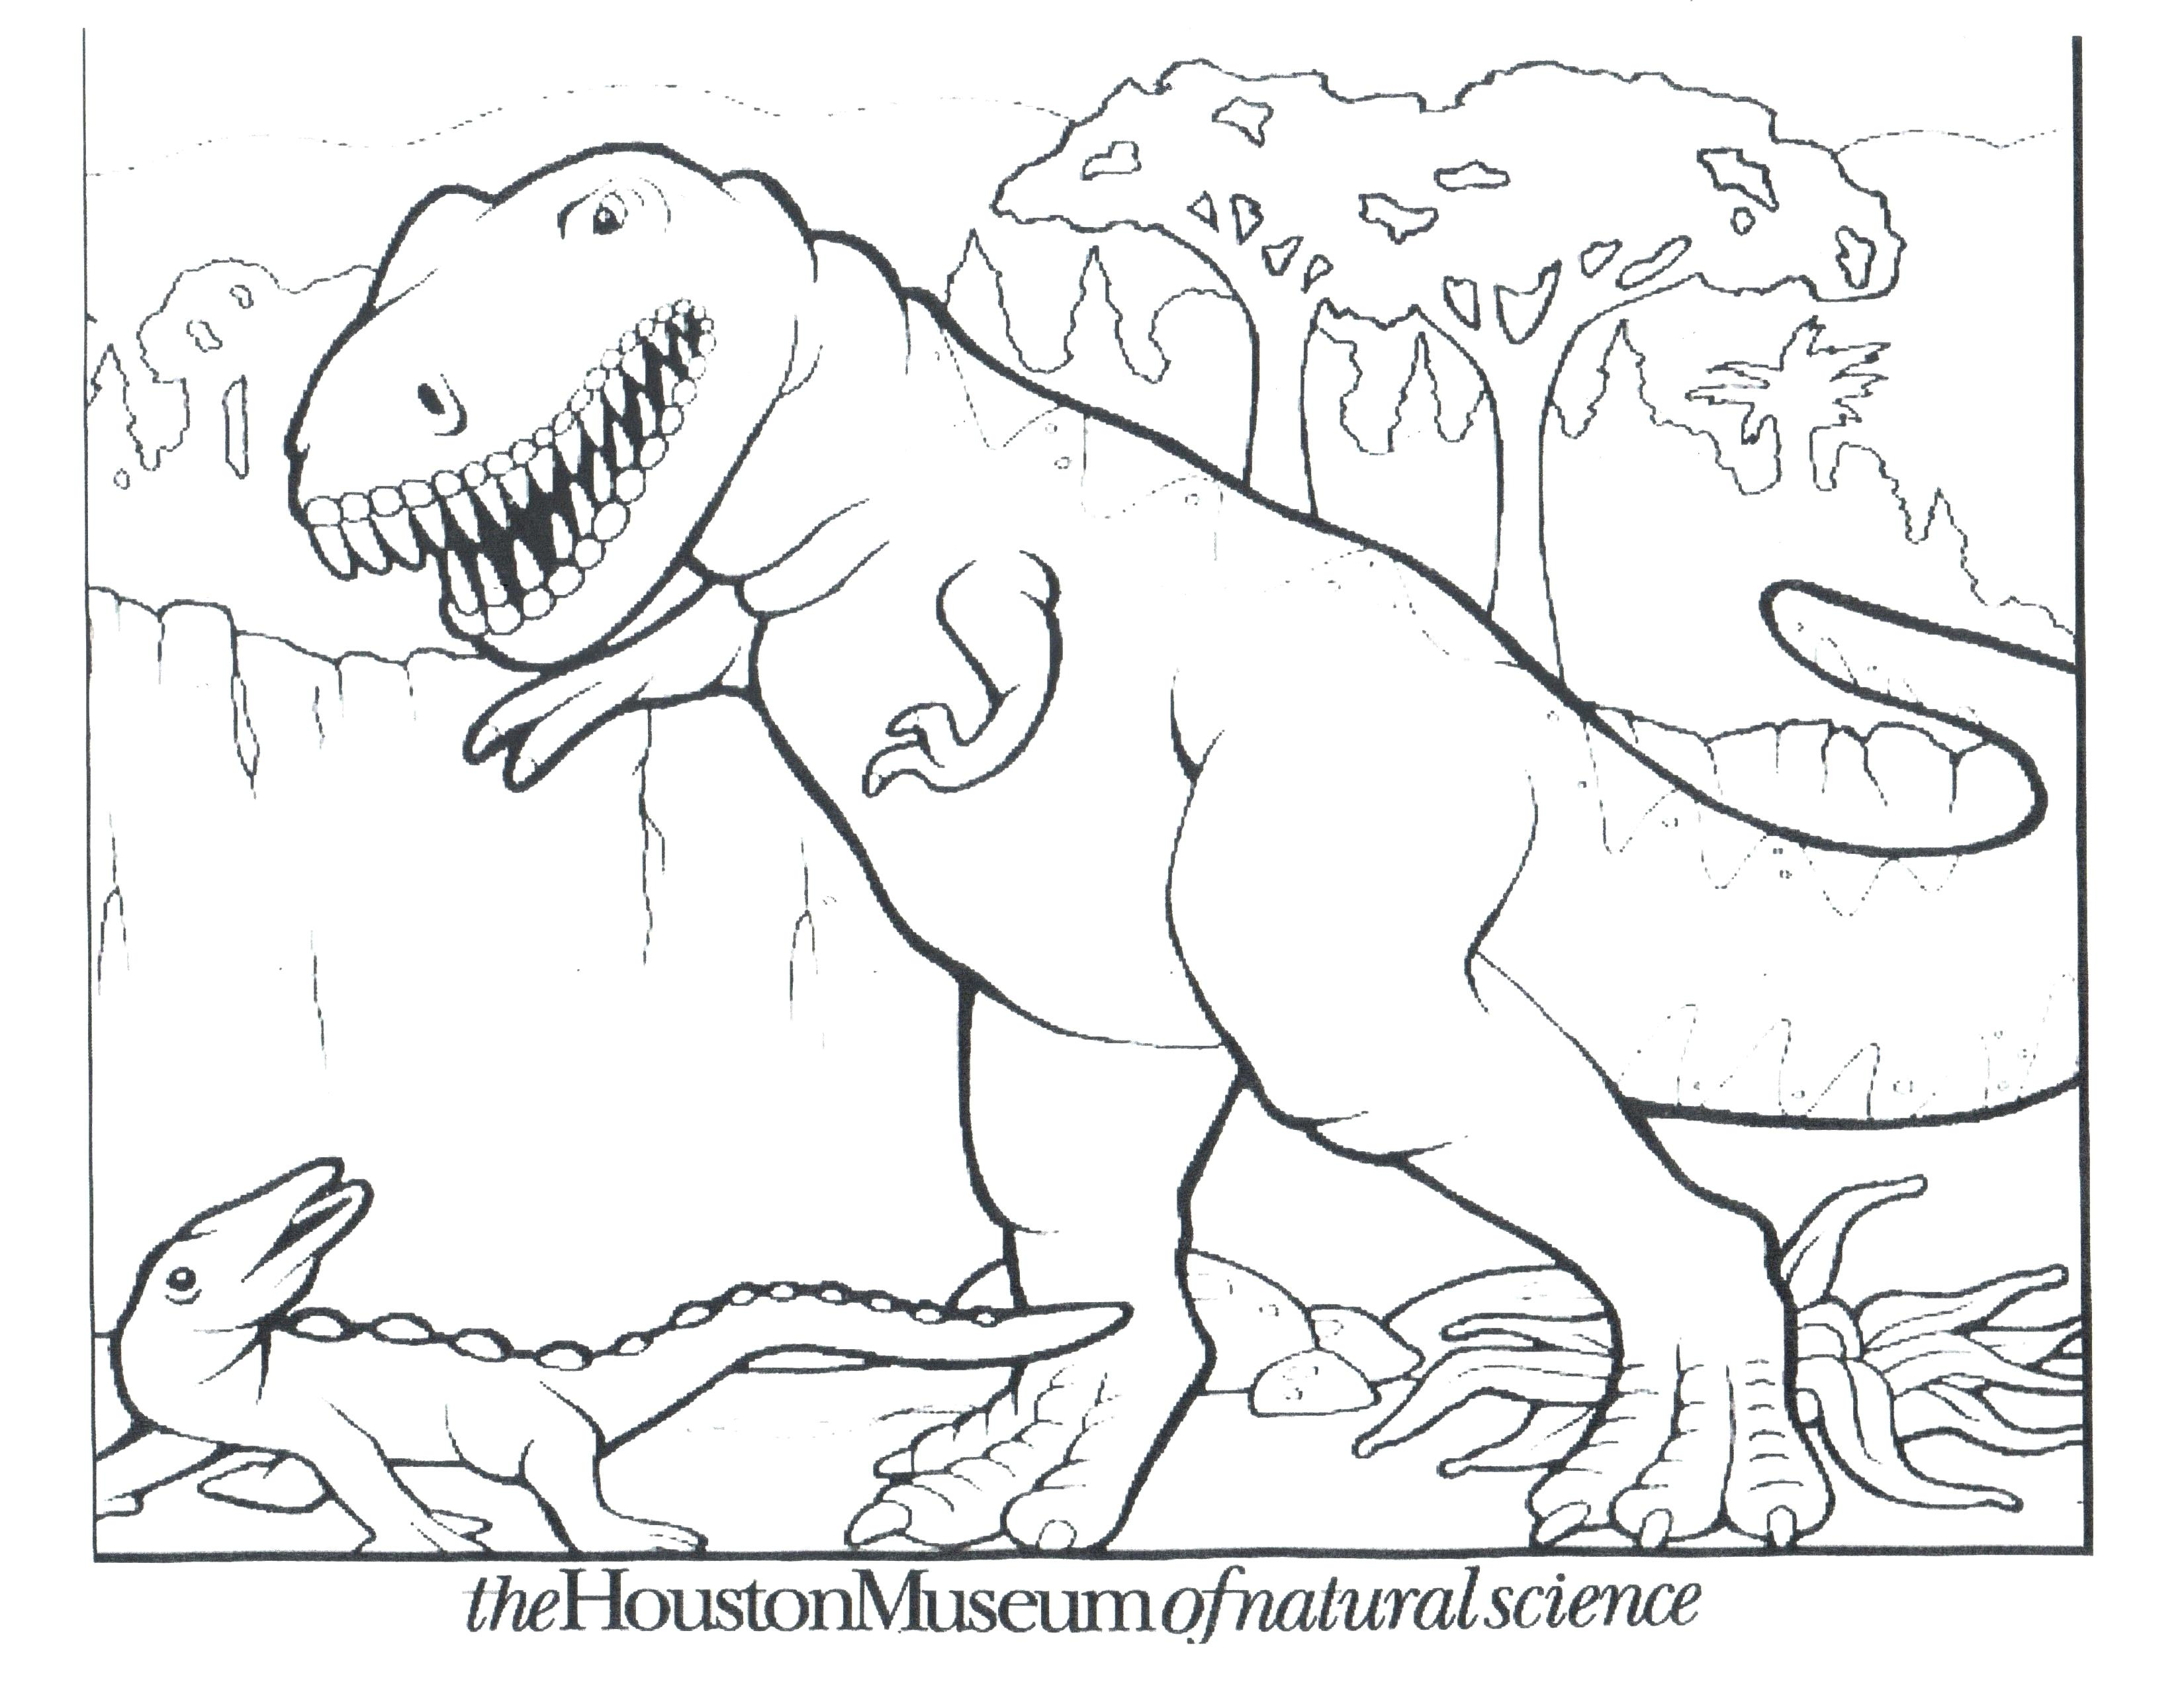 Free t rex coloring pages at getdrawings com free for personal use